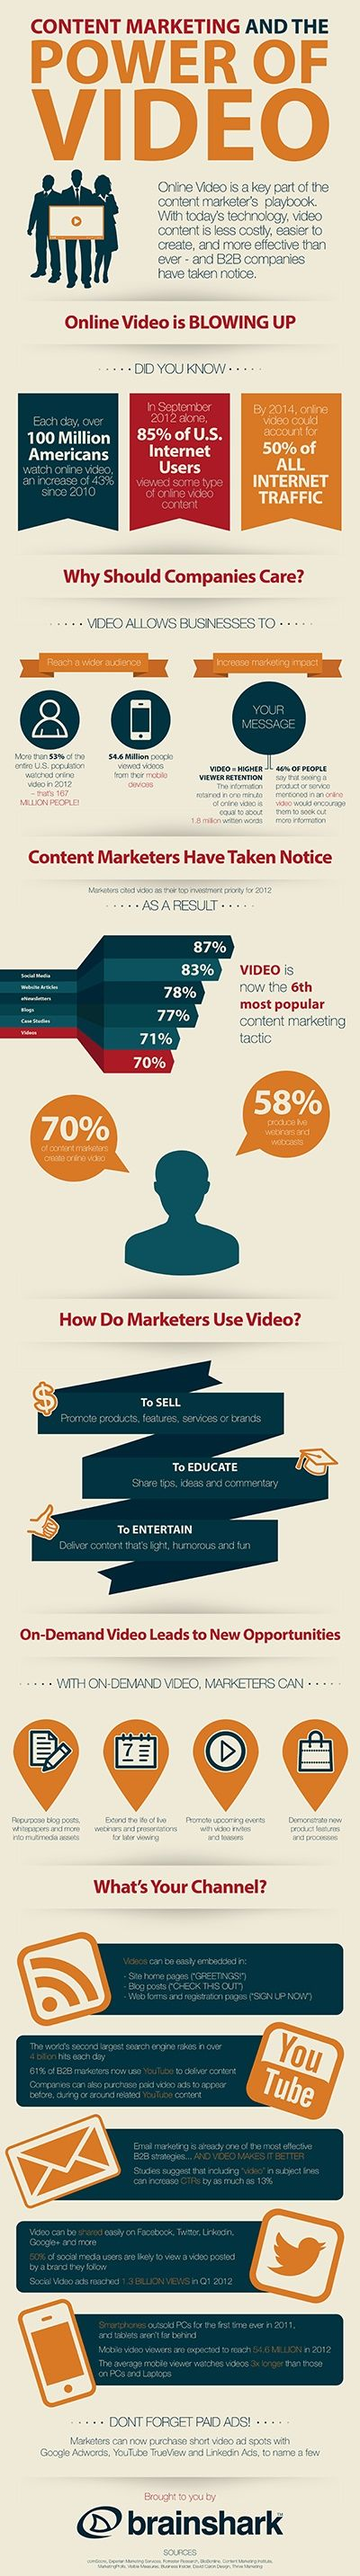 The Importance of Video in your Content Marketing Strategy #Infographic